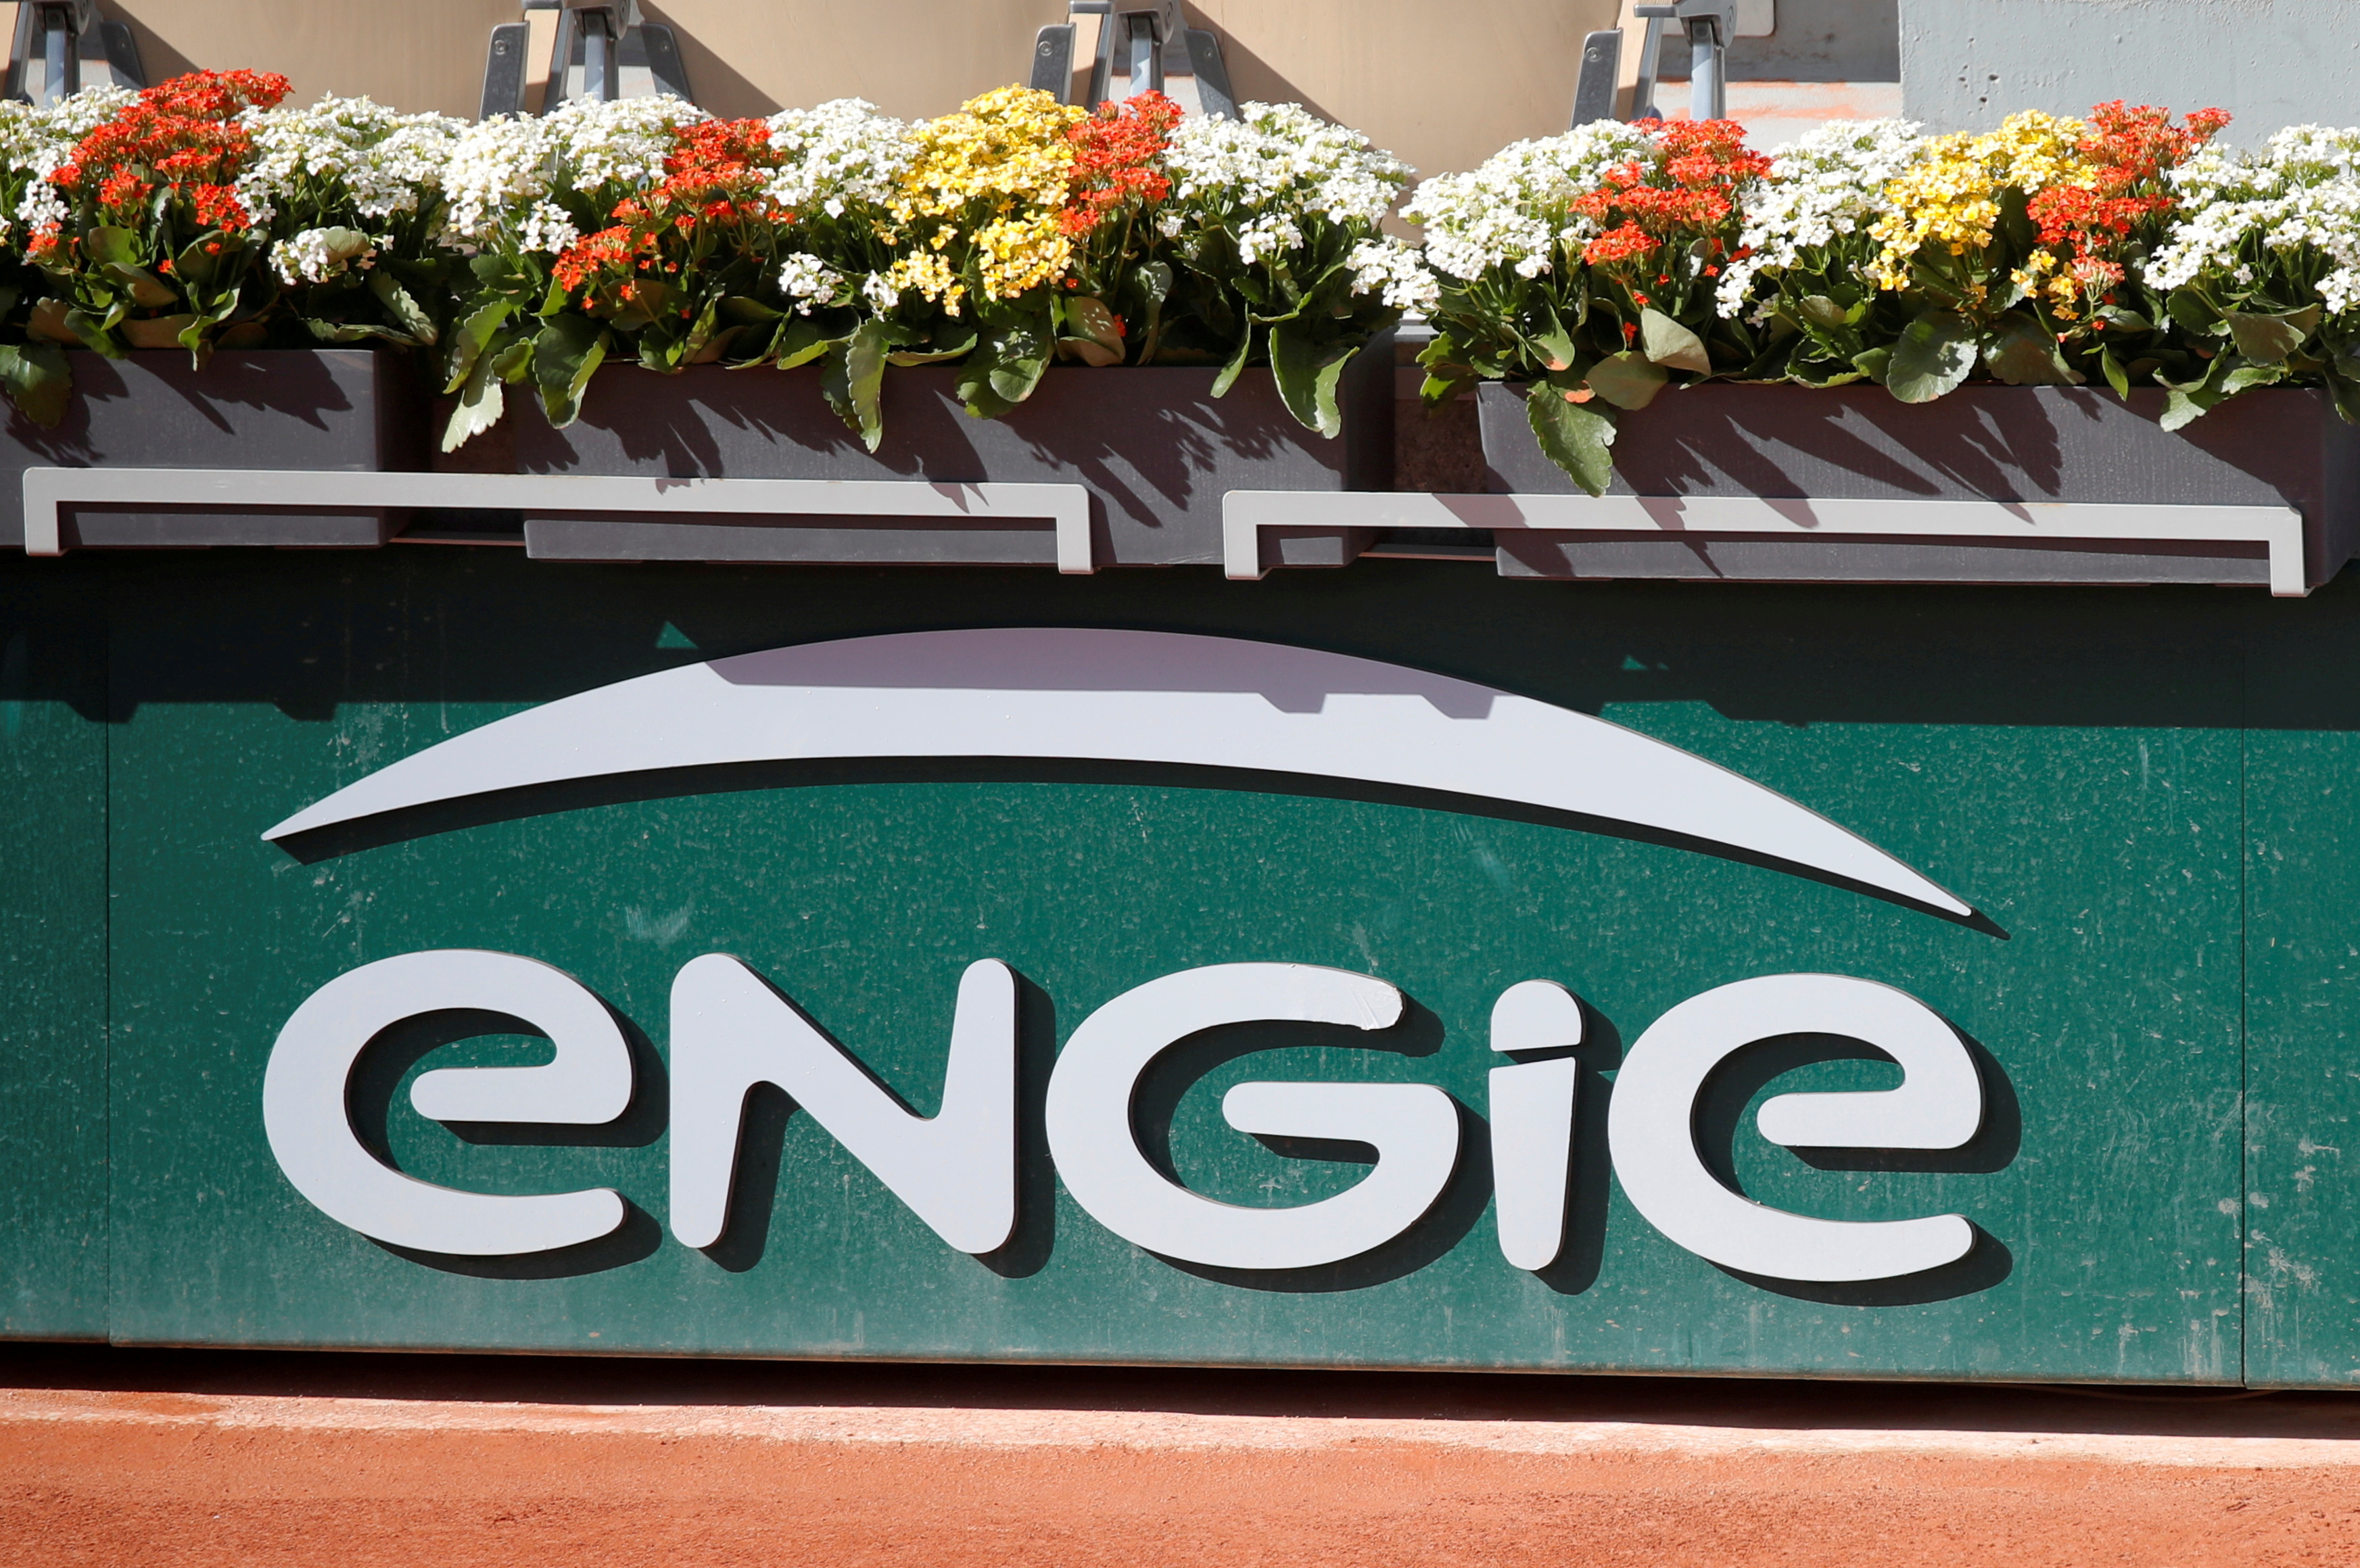 The logo of Engie is seen on central court at Roland-Garros stadium during the 2020 French tennis Open in Paris, France, October 4, 2020. REUTERS/Charles Platiau